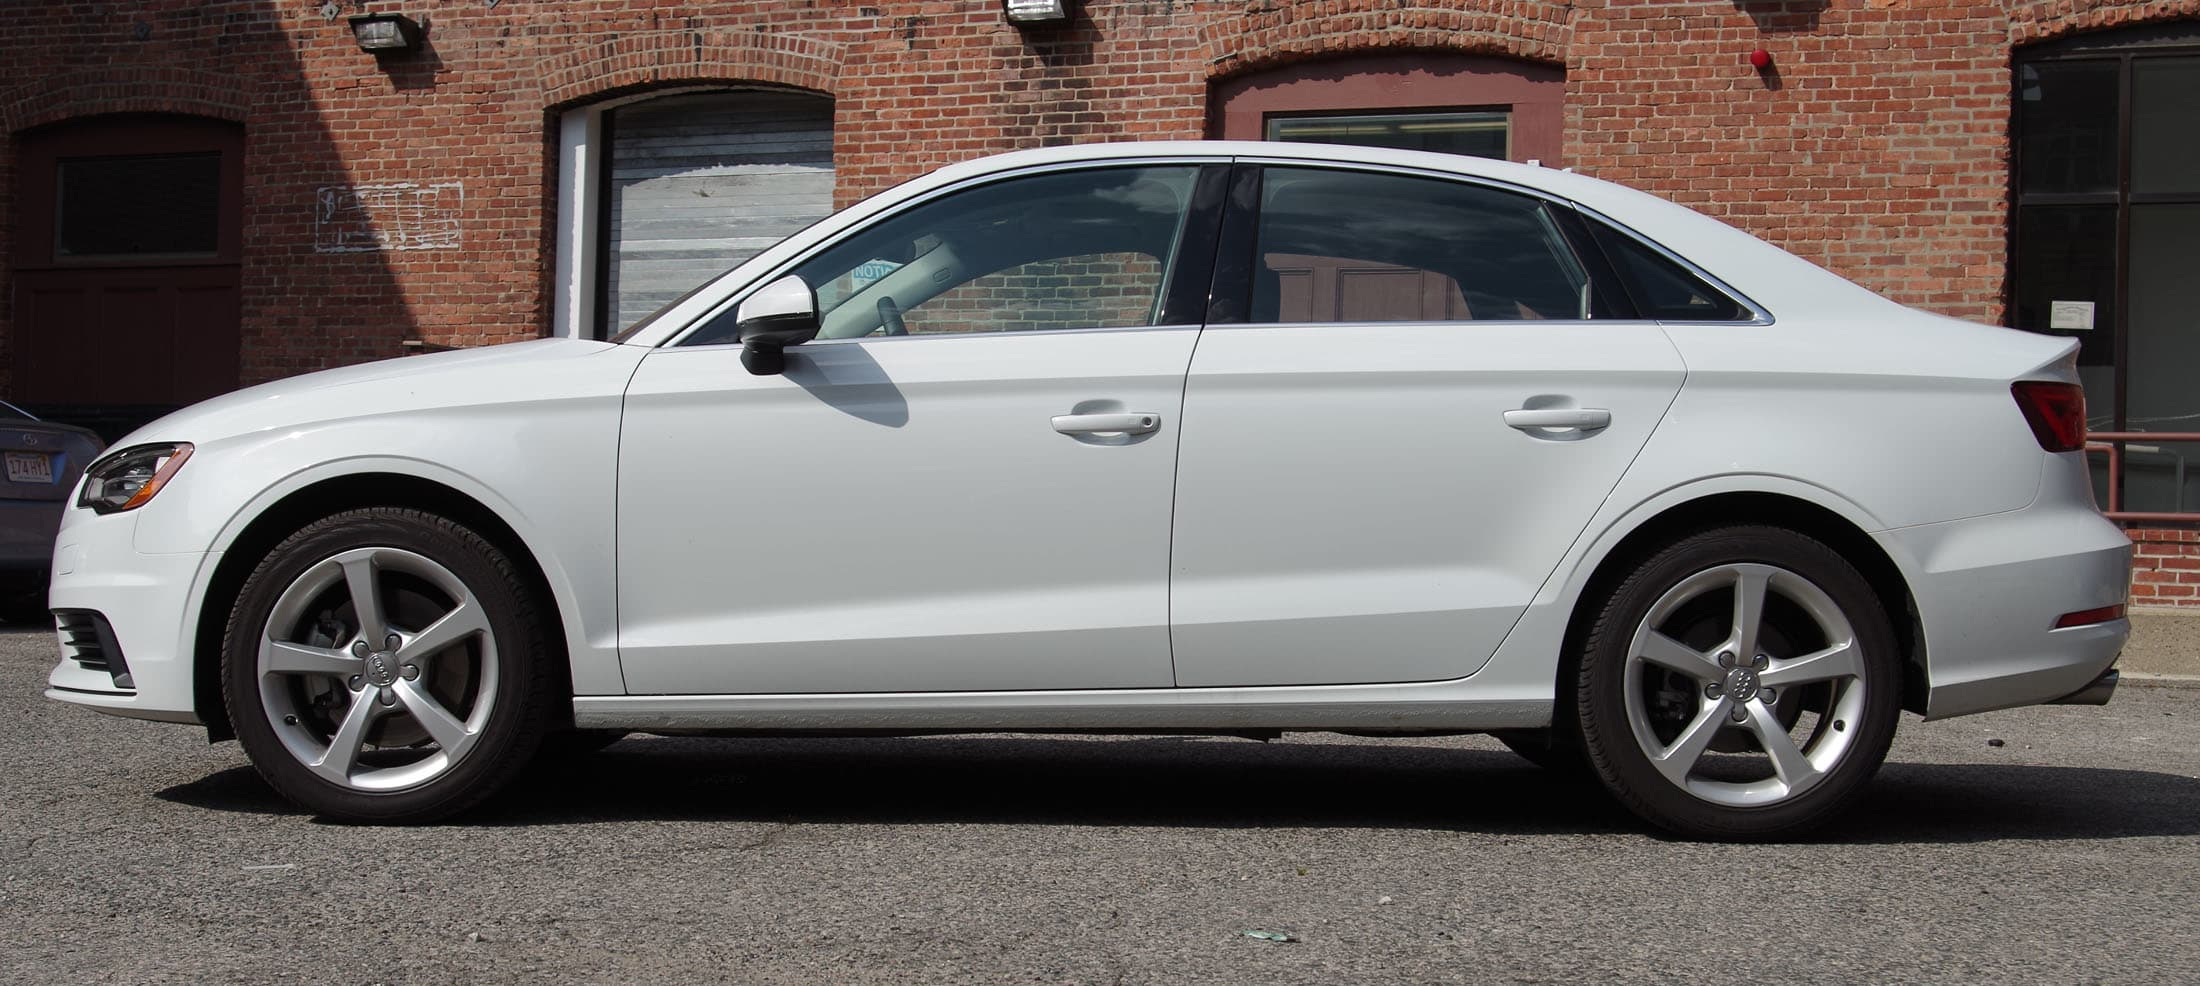 2015 Audi A3 A Compact Sedan That Deserves The Hype Reviewed Com Cars